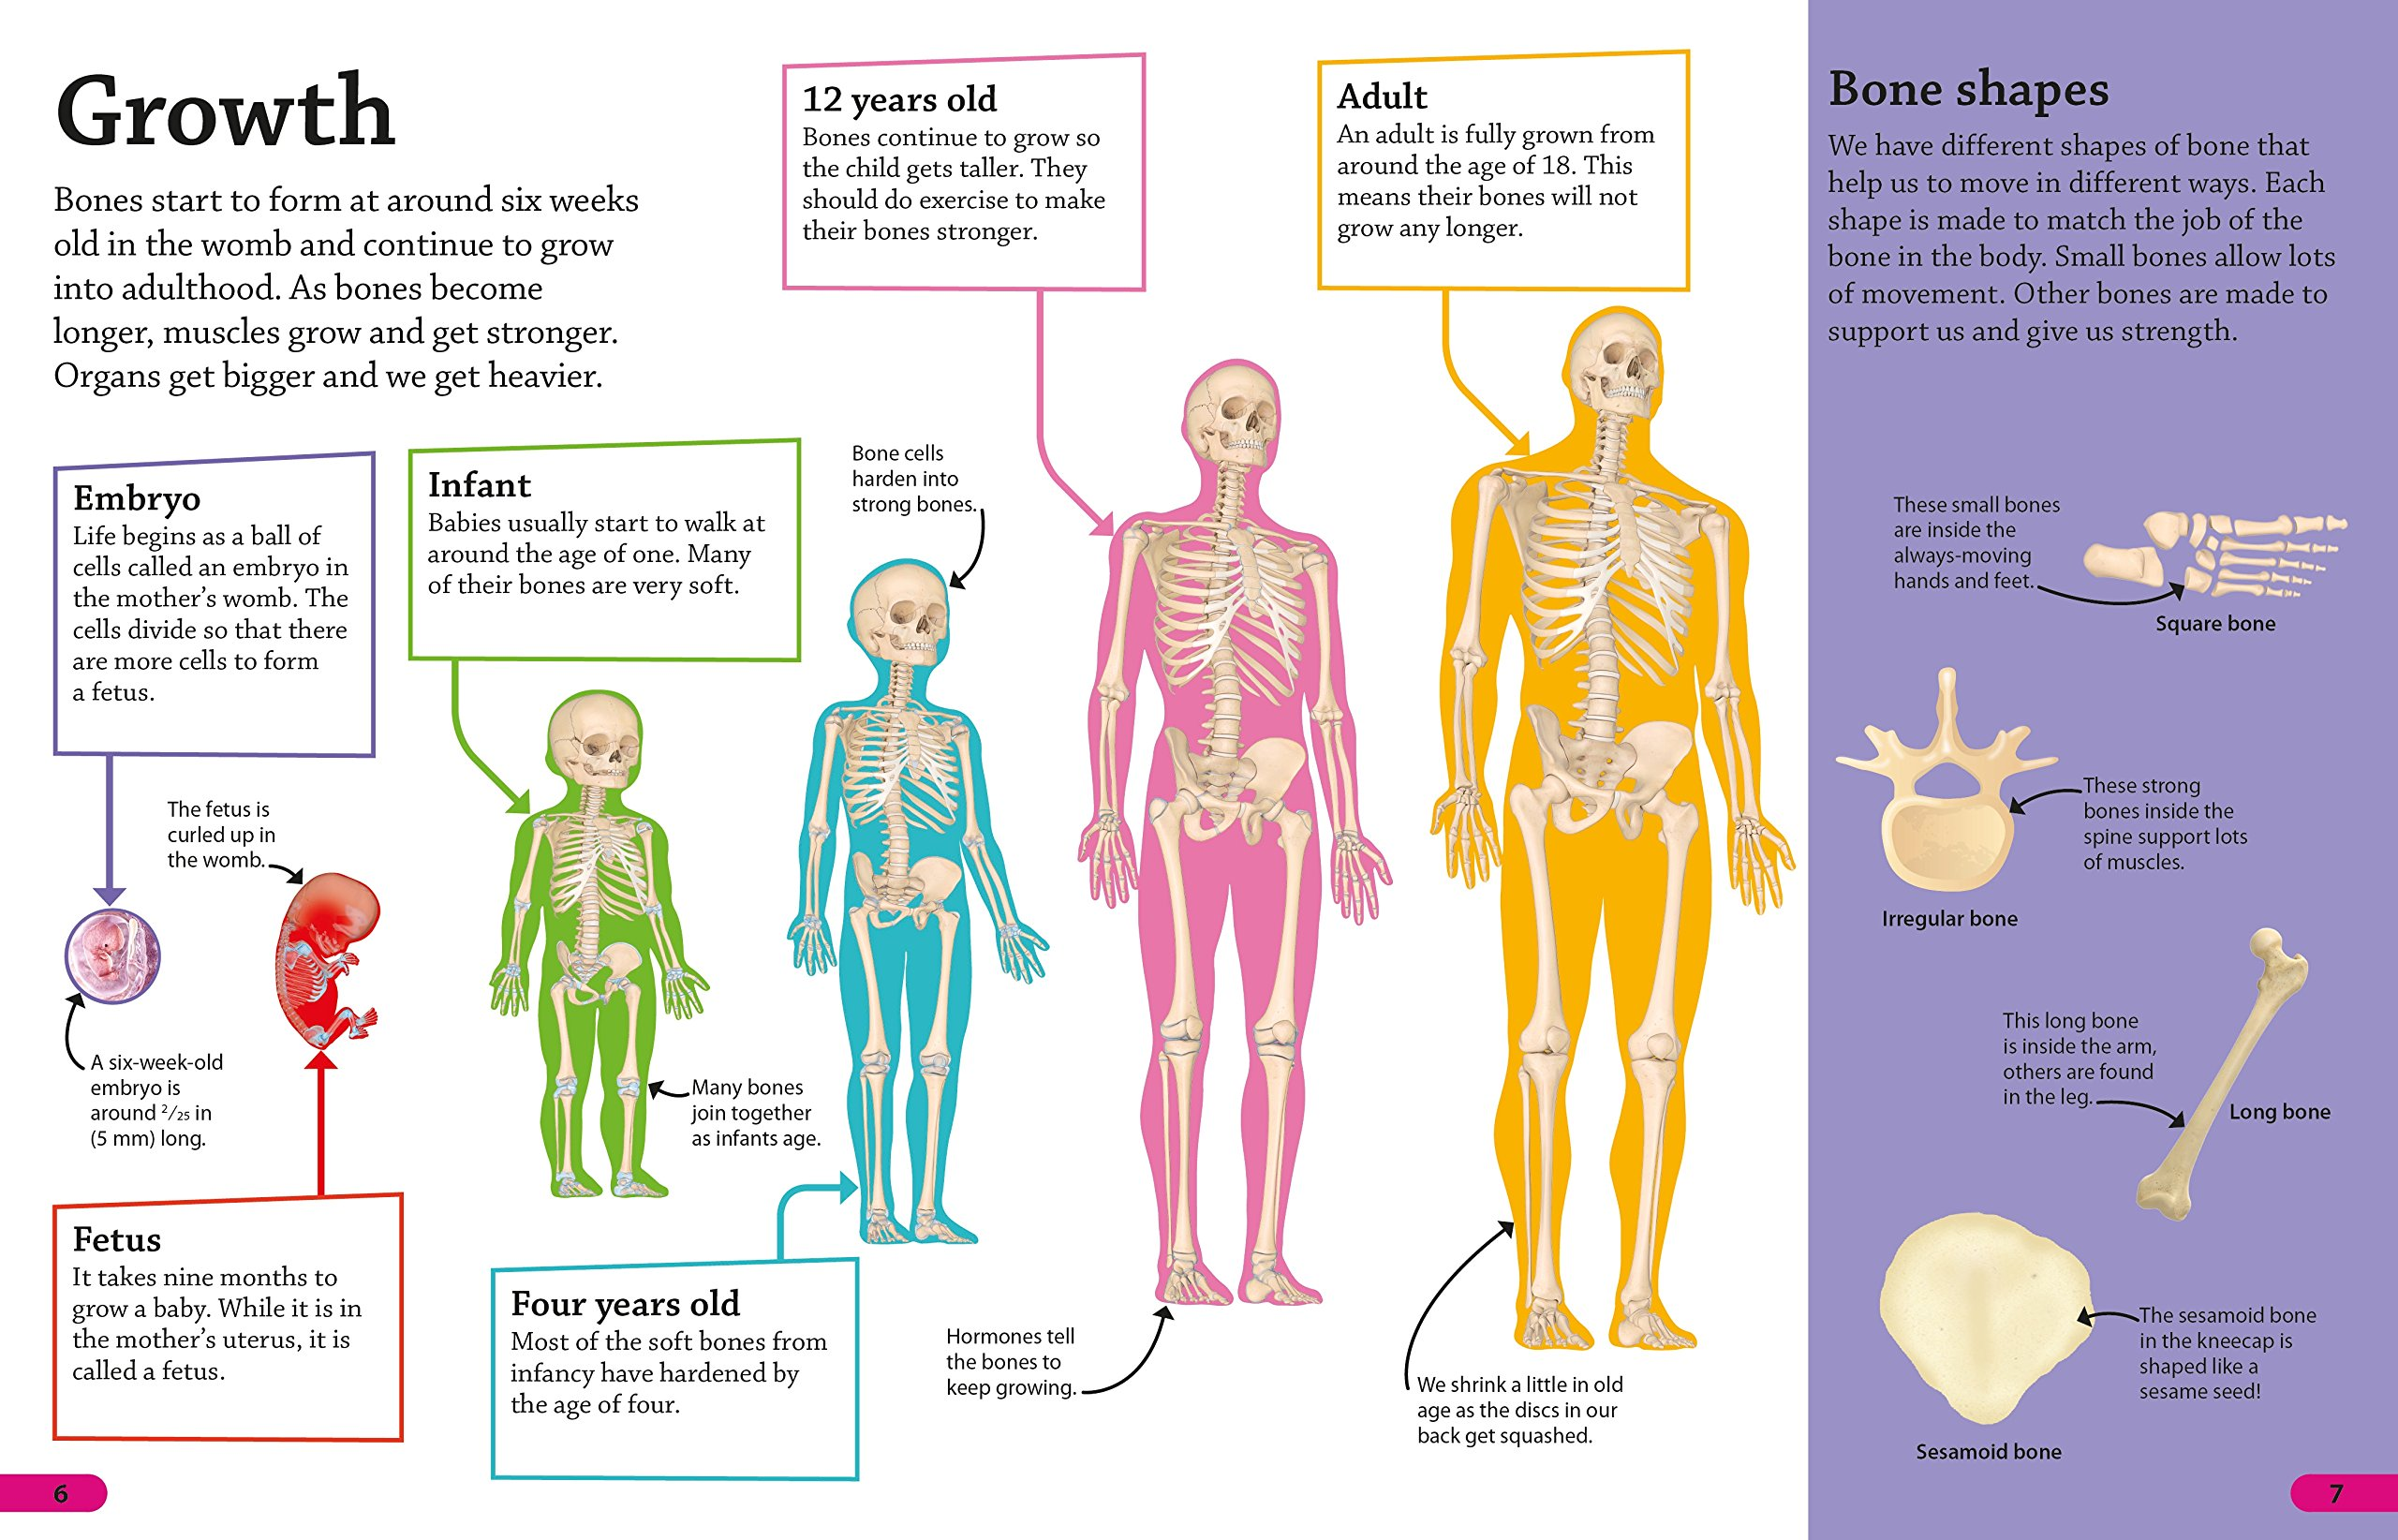 What we did not know about the possibilities of the human body